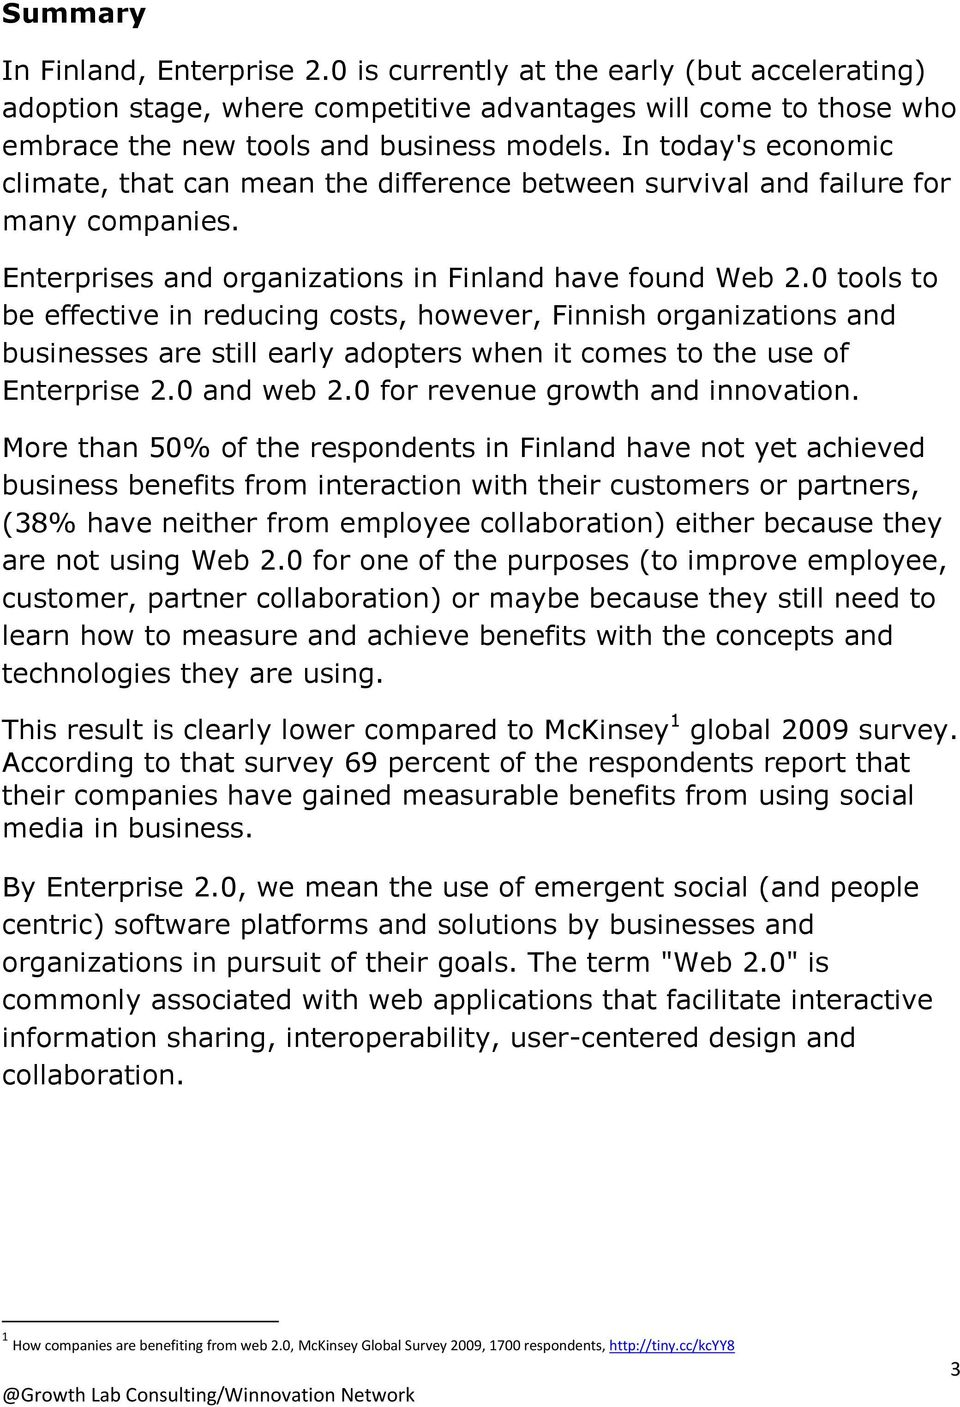 0 tools to be effective in reducing costs, however, Finnish organizations and businesses are still early adopters when it comes to the use of Enterprise 2.0 and web 2.